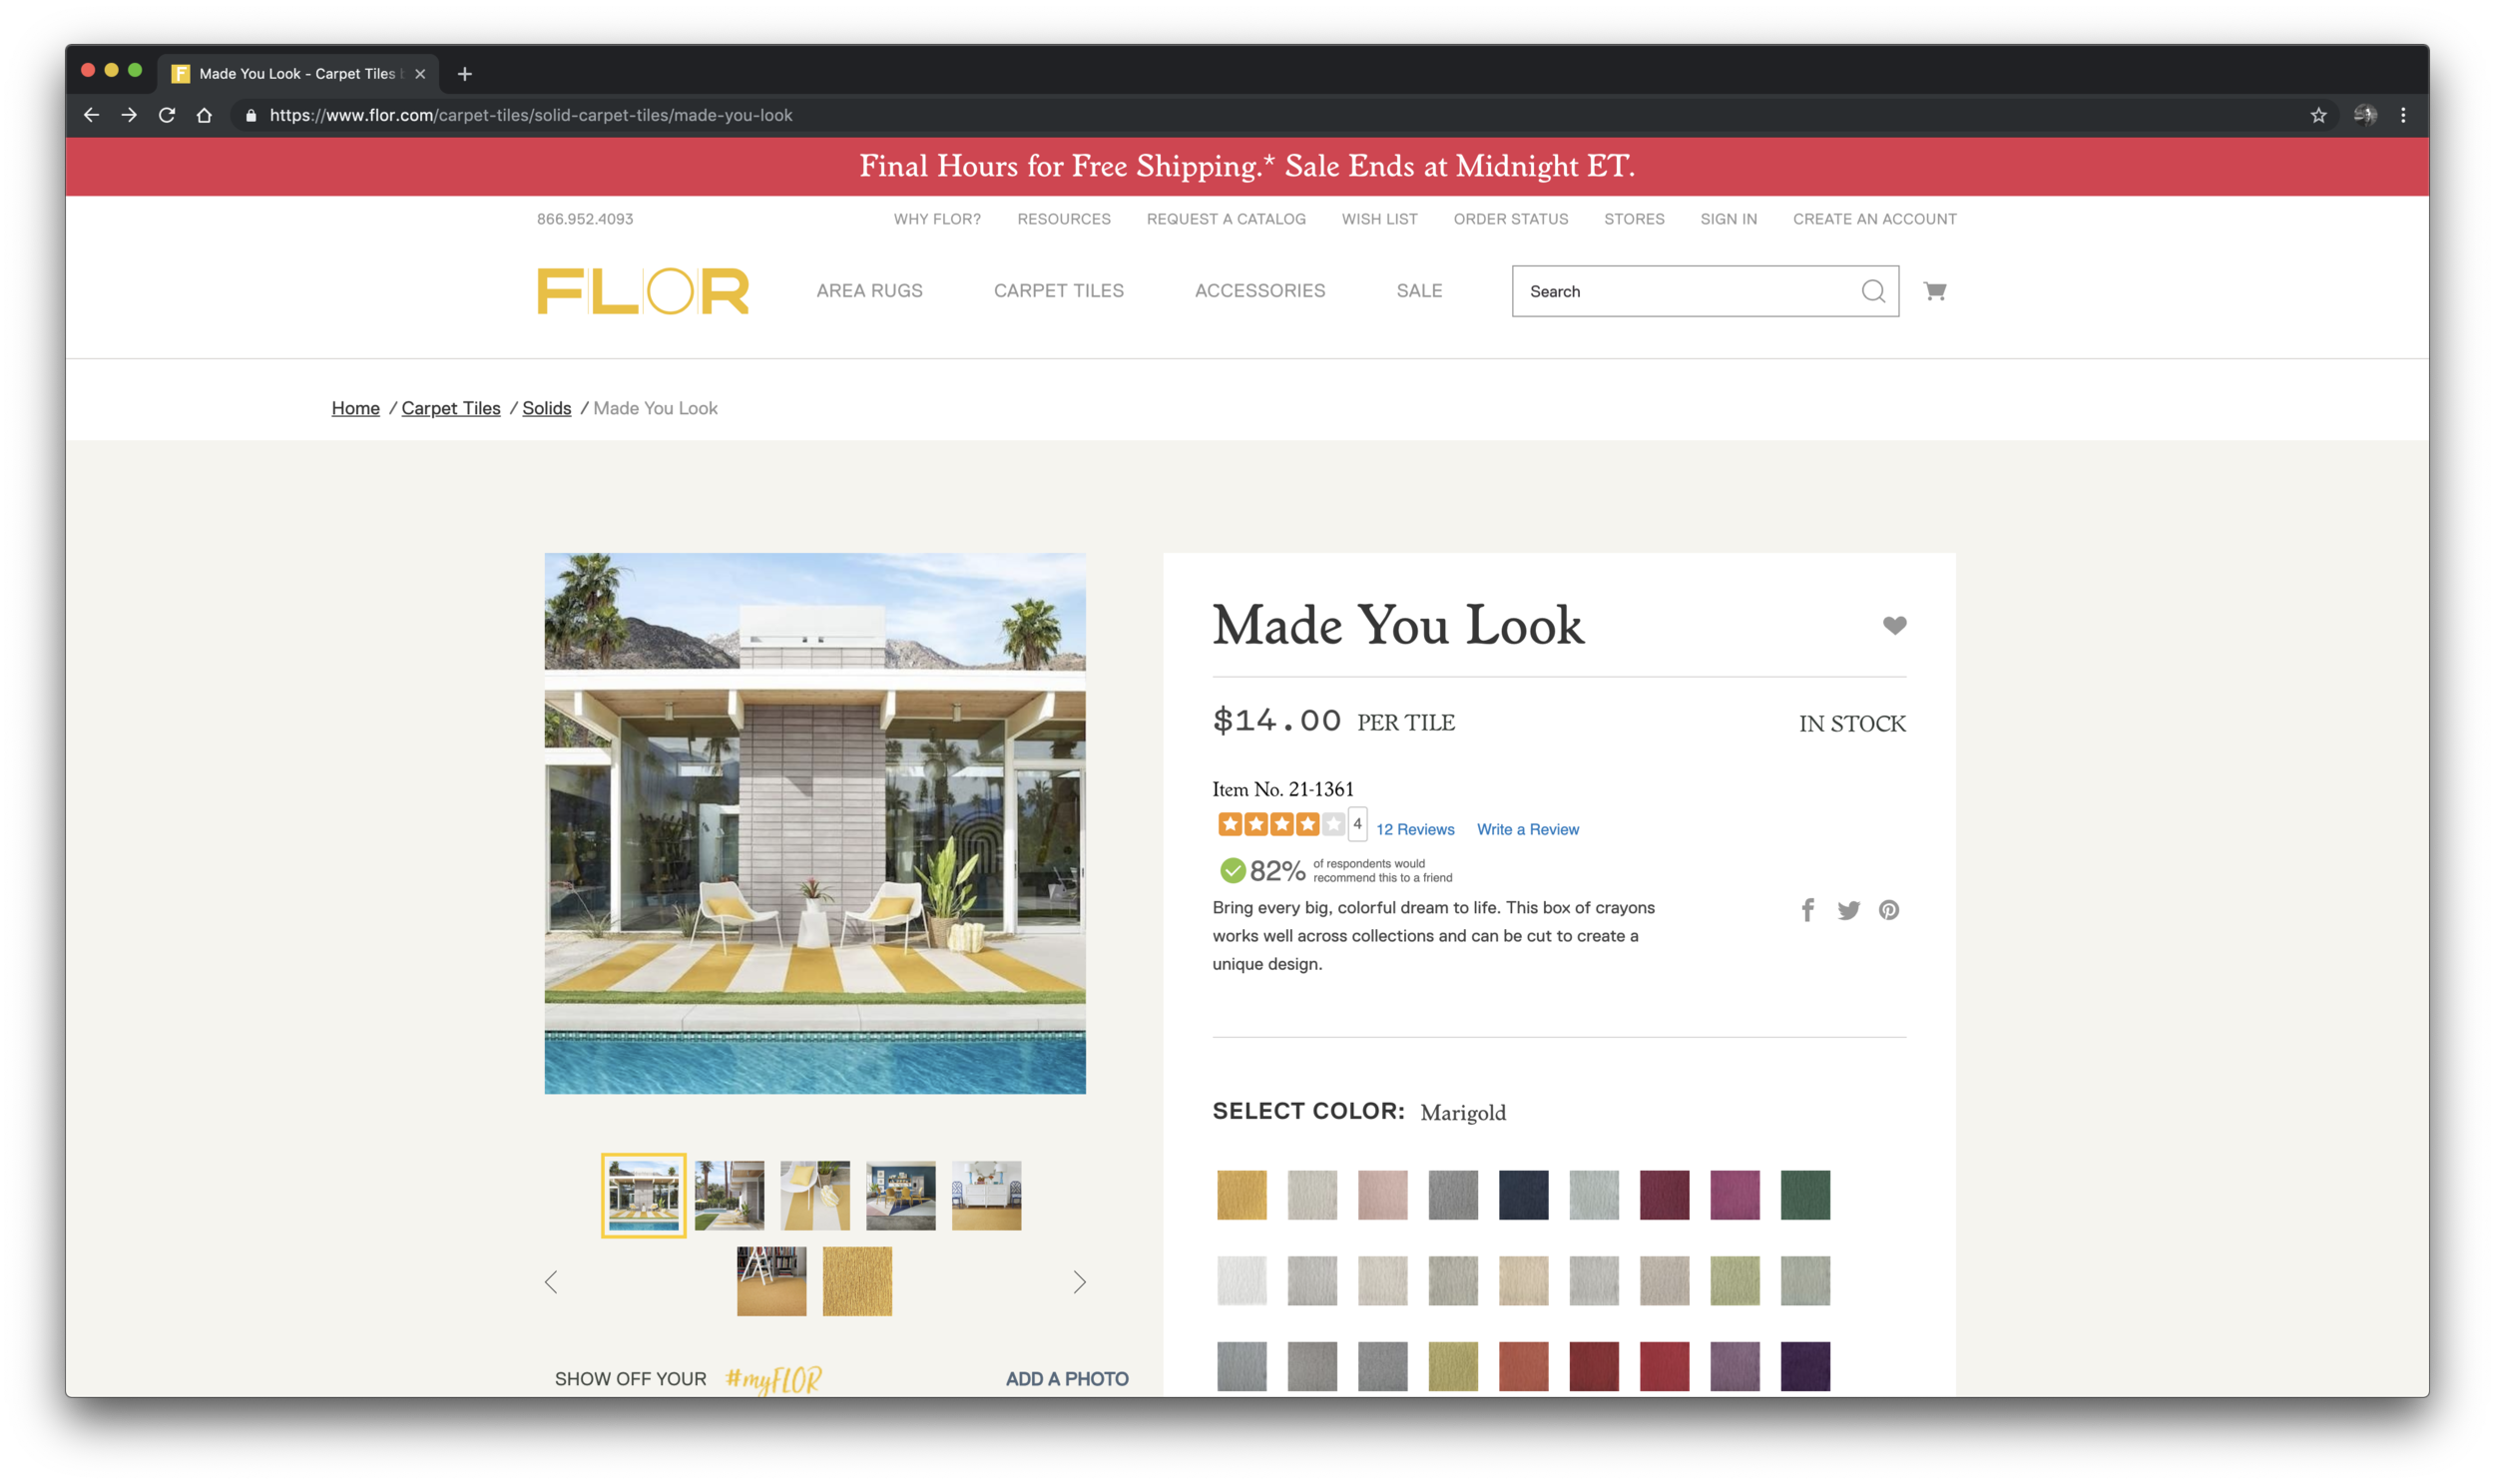 Flor's    product pages stand out in several ways. They employ multiple strategies of social proof, including ratings, reviews, and social media posts automatically pulled from instagram. They also make pricing and return information clear and easy to understand. Best yet, all of the color and ordering options are listed in one place with an interactive element following users to select their choices and see the price update accordingly.